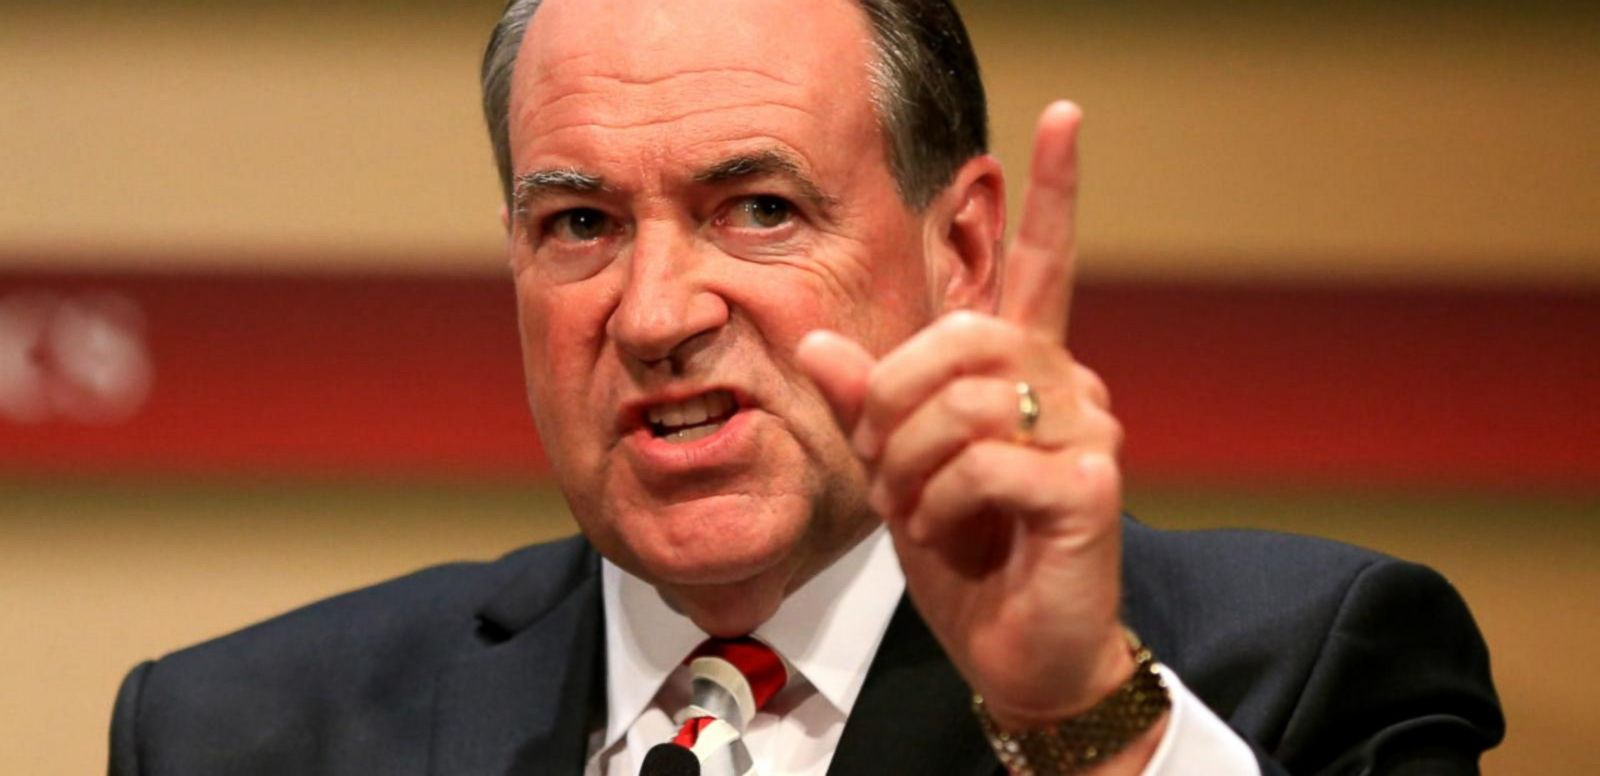 VIDEO: Mike Huckabee Makes Splash With His Own Controversial Comments On Iran